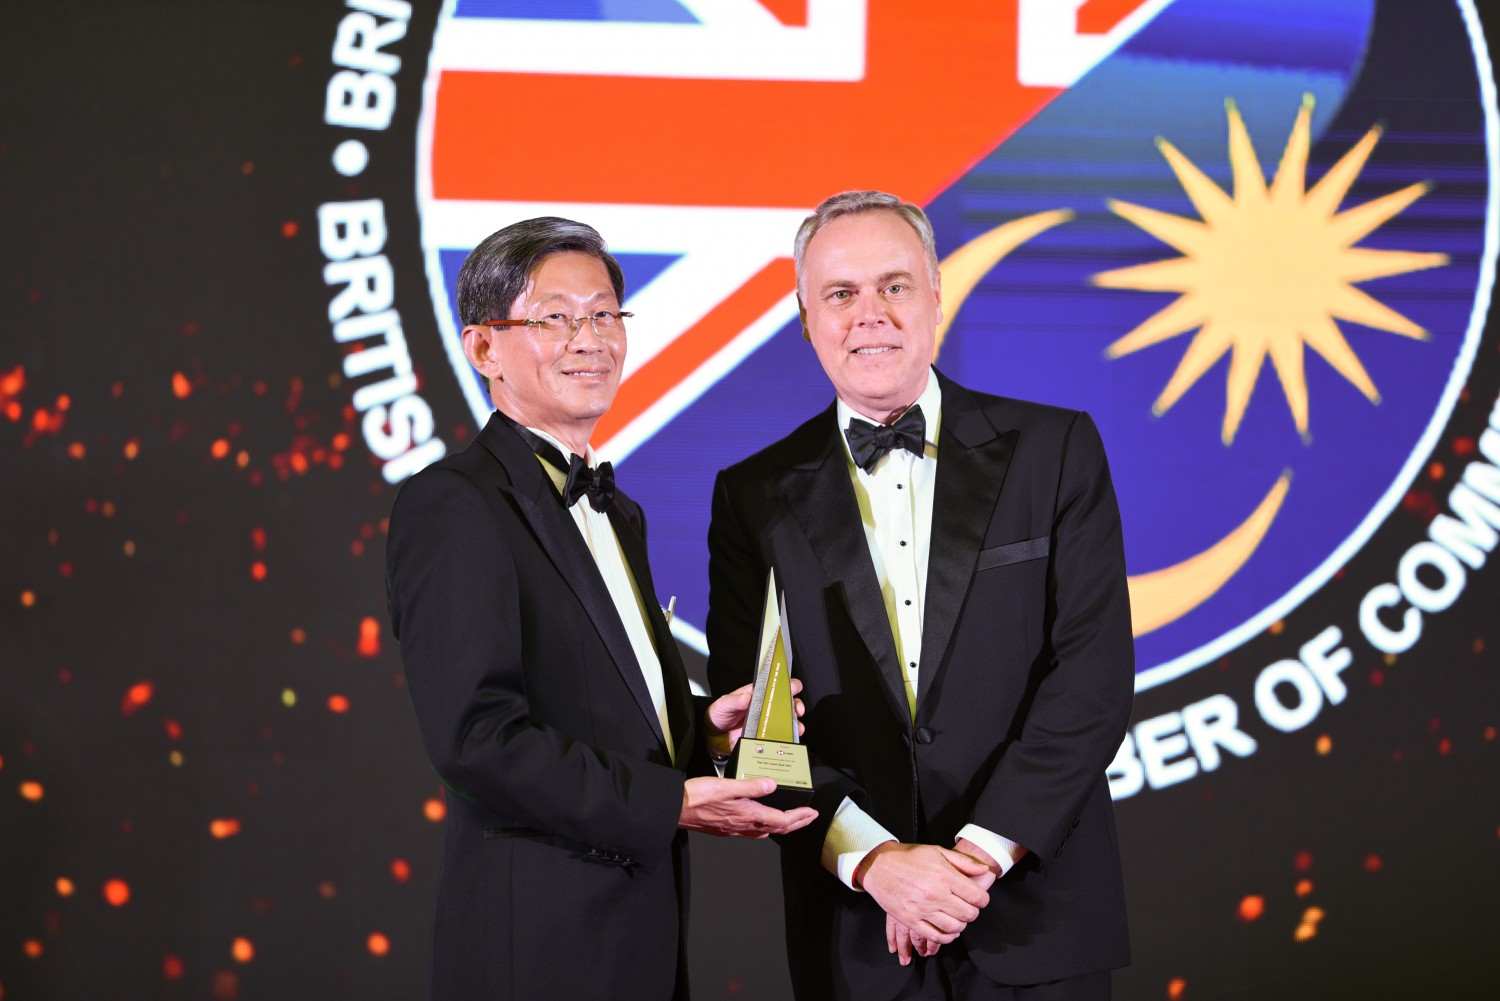 Picture L-R: Dato' Teow Leong Seng, CEO of Eco World International receiving the award on behalf of Tan Sri Liew Kee Sin, presented by Mr. Andrew Sill, BMCC Chairman